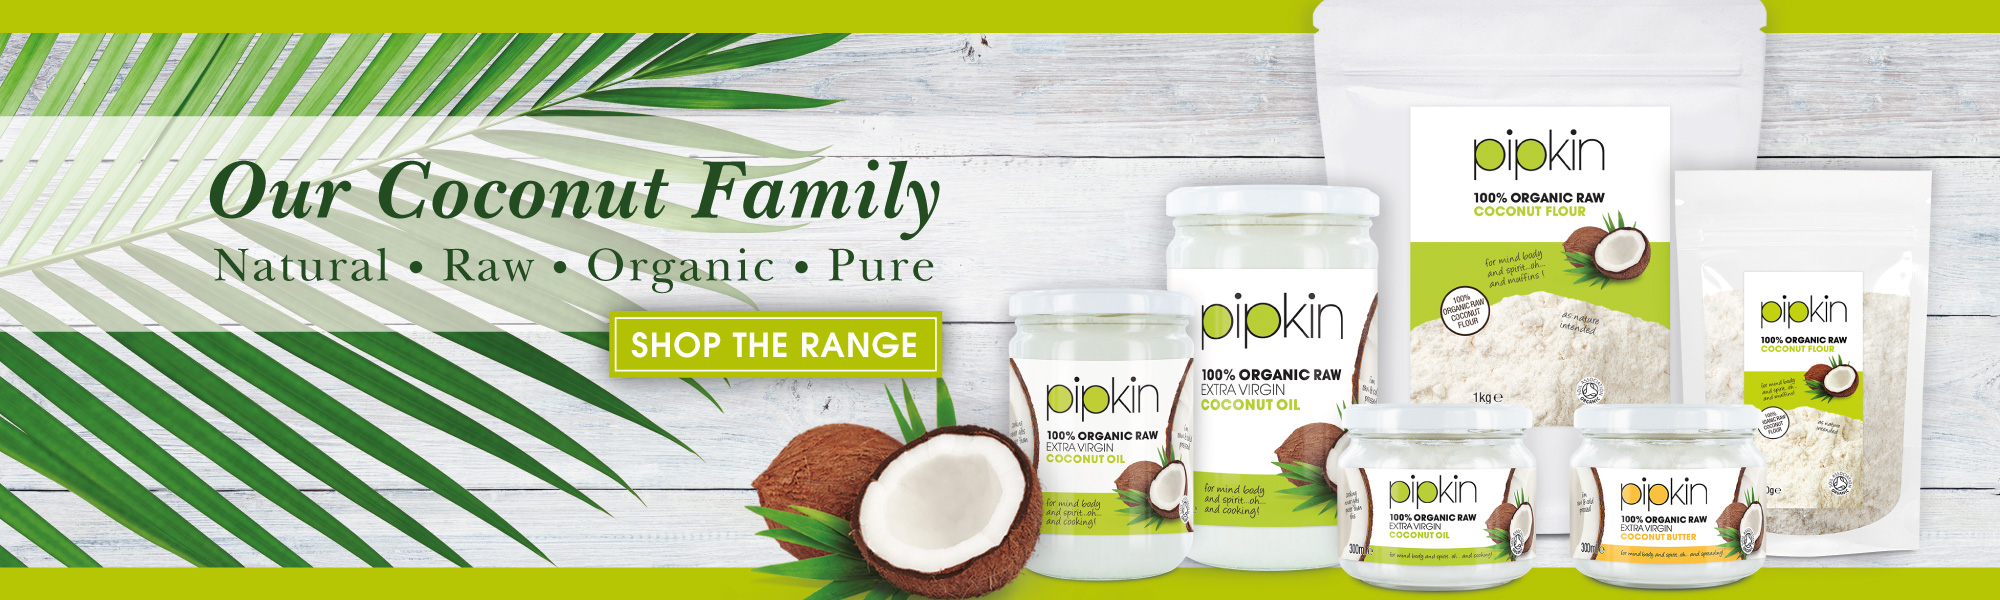 Pipkin Coconut Range - coconut oil, flour and butter